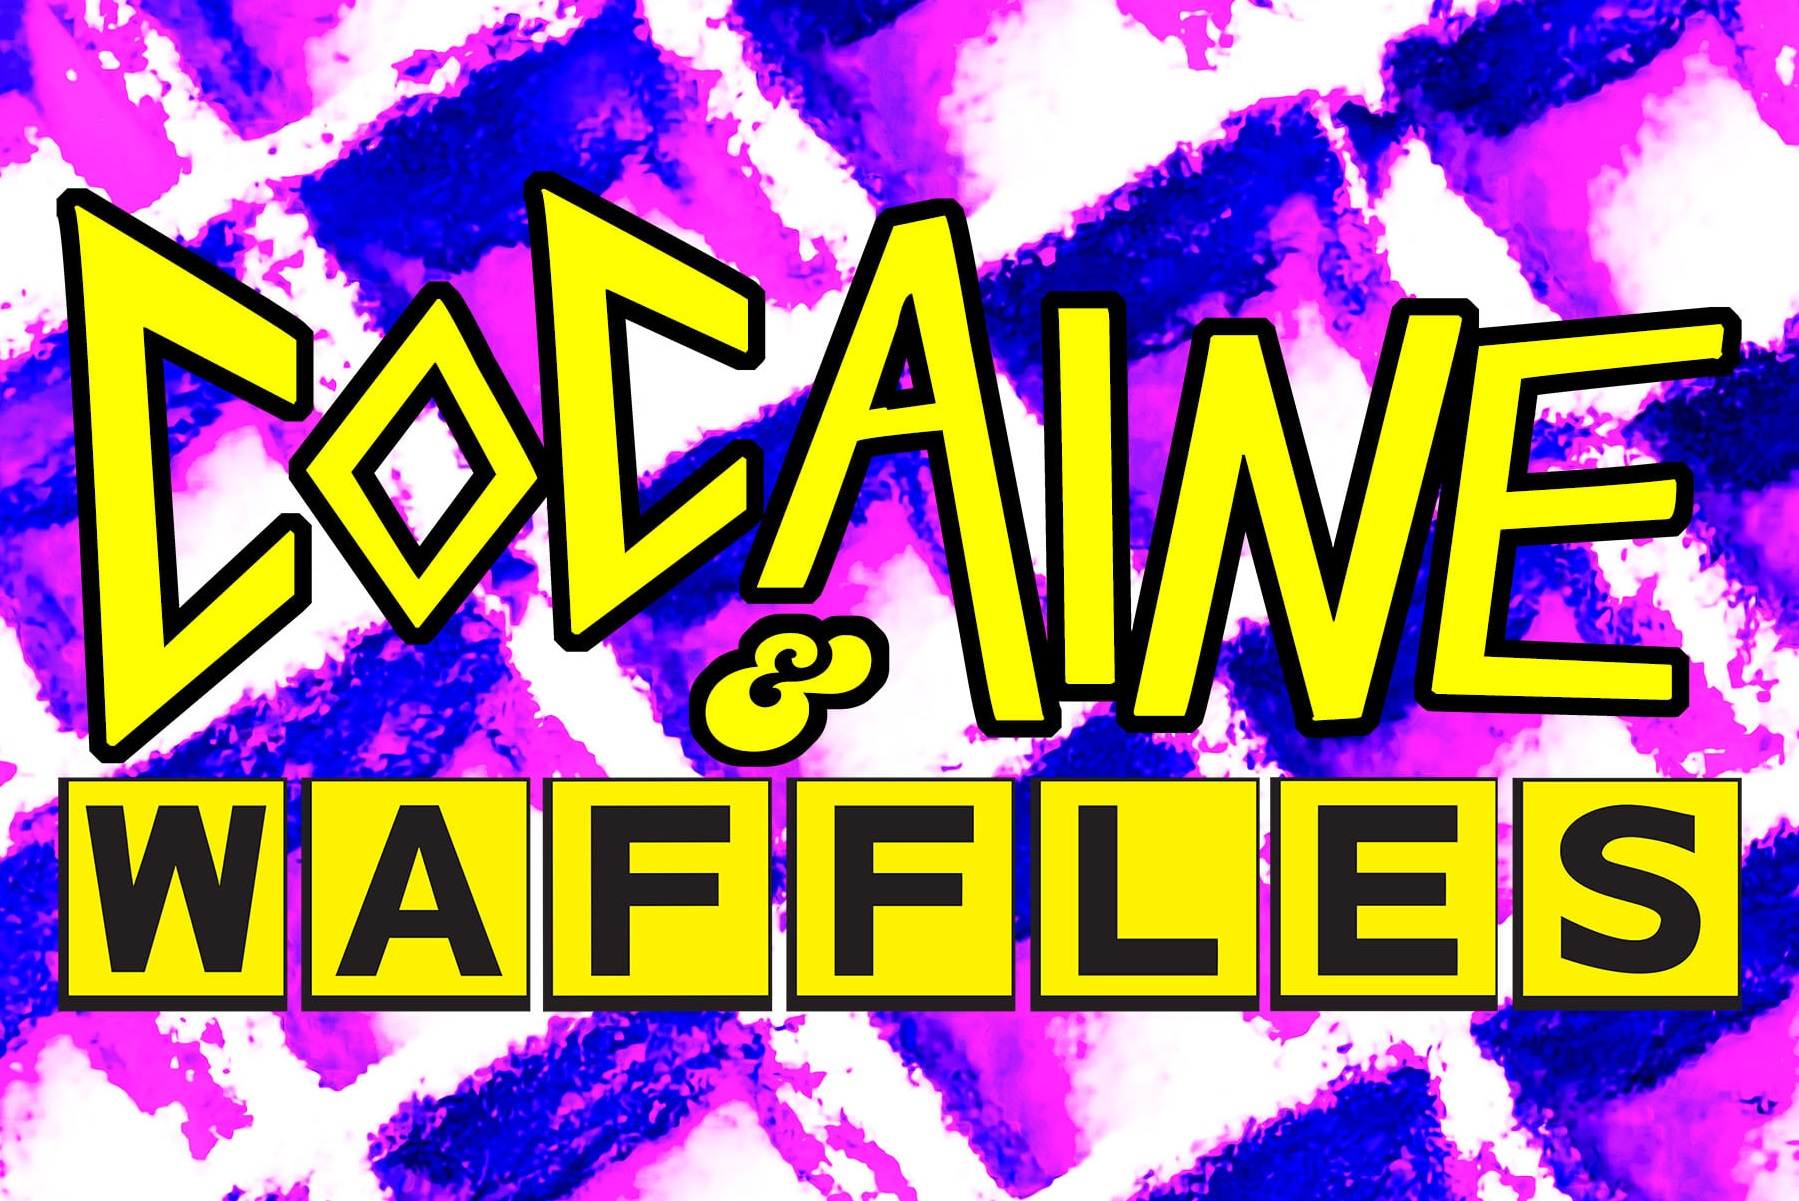 Classic Lenses Podcast Presents: Cocaine and Waffles